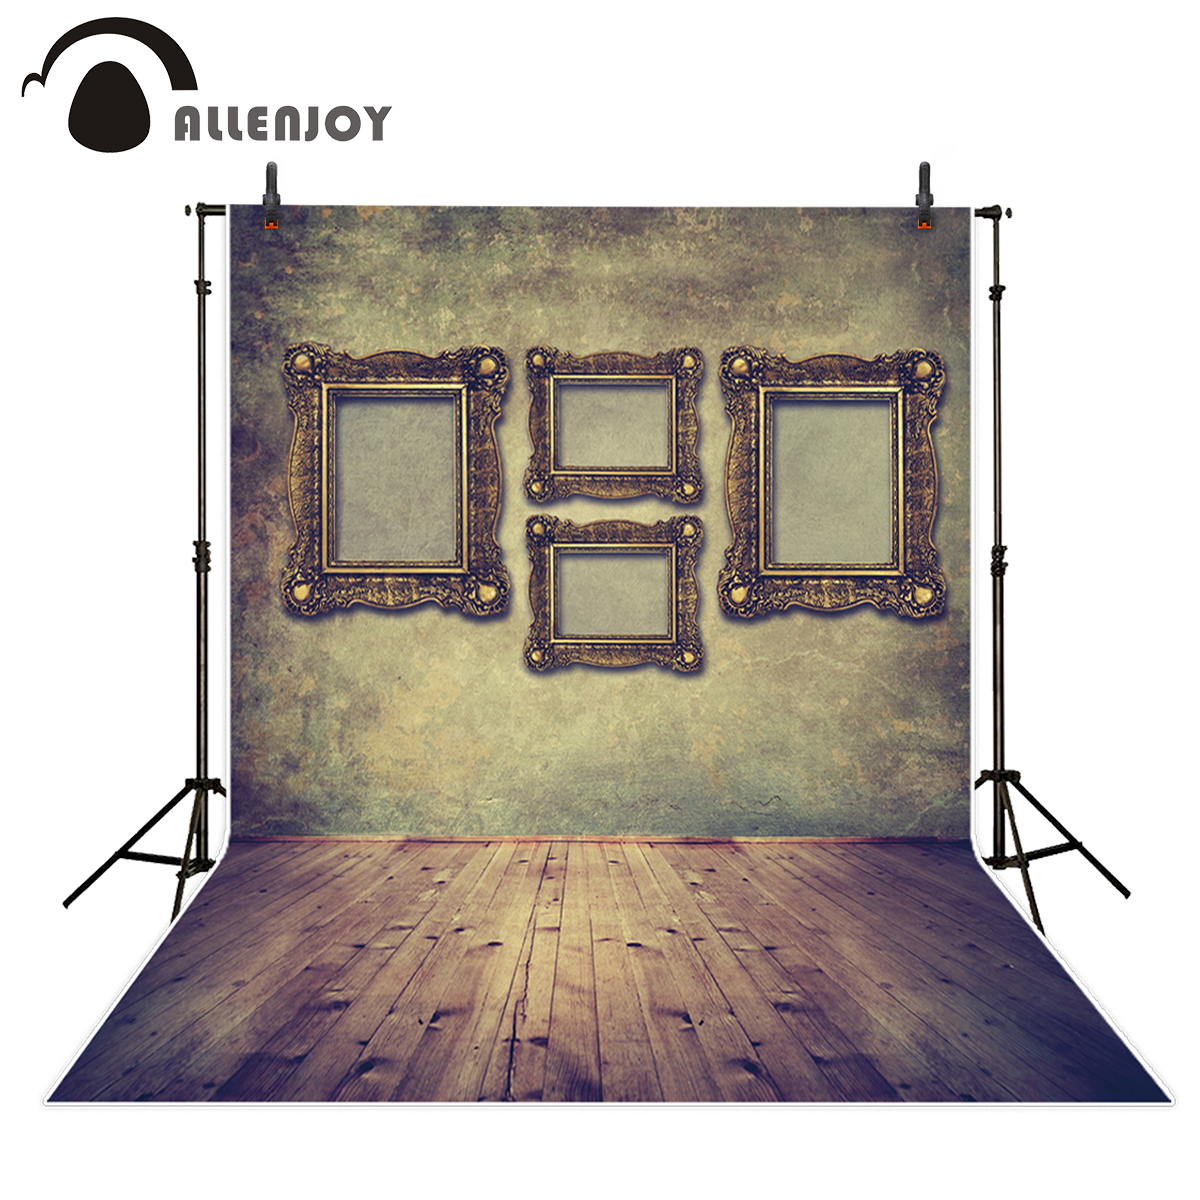 Allenjoy photography backdrop vintage luxury elegant frame wood floor background photocall printed professional new